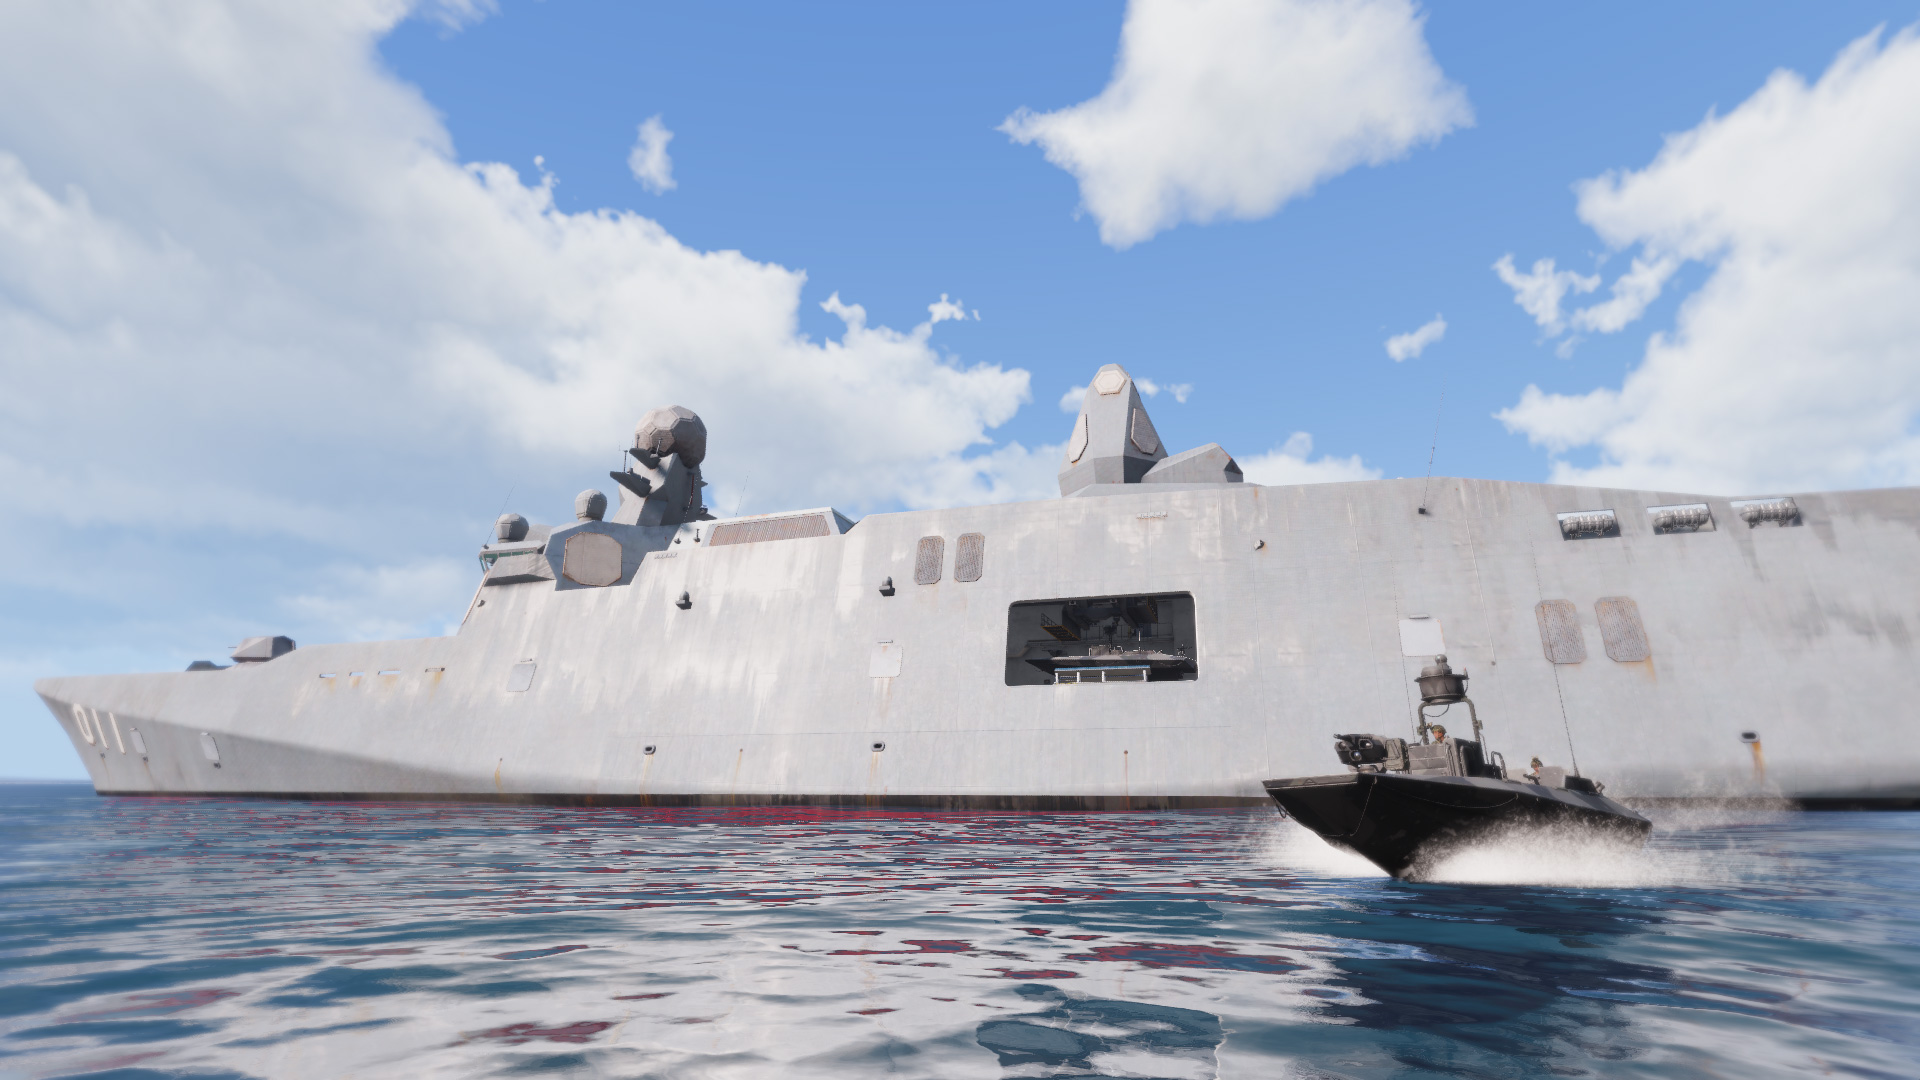 dev.arma3.com/assets/img/post/images/NATO_Destroyer_5.jpg